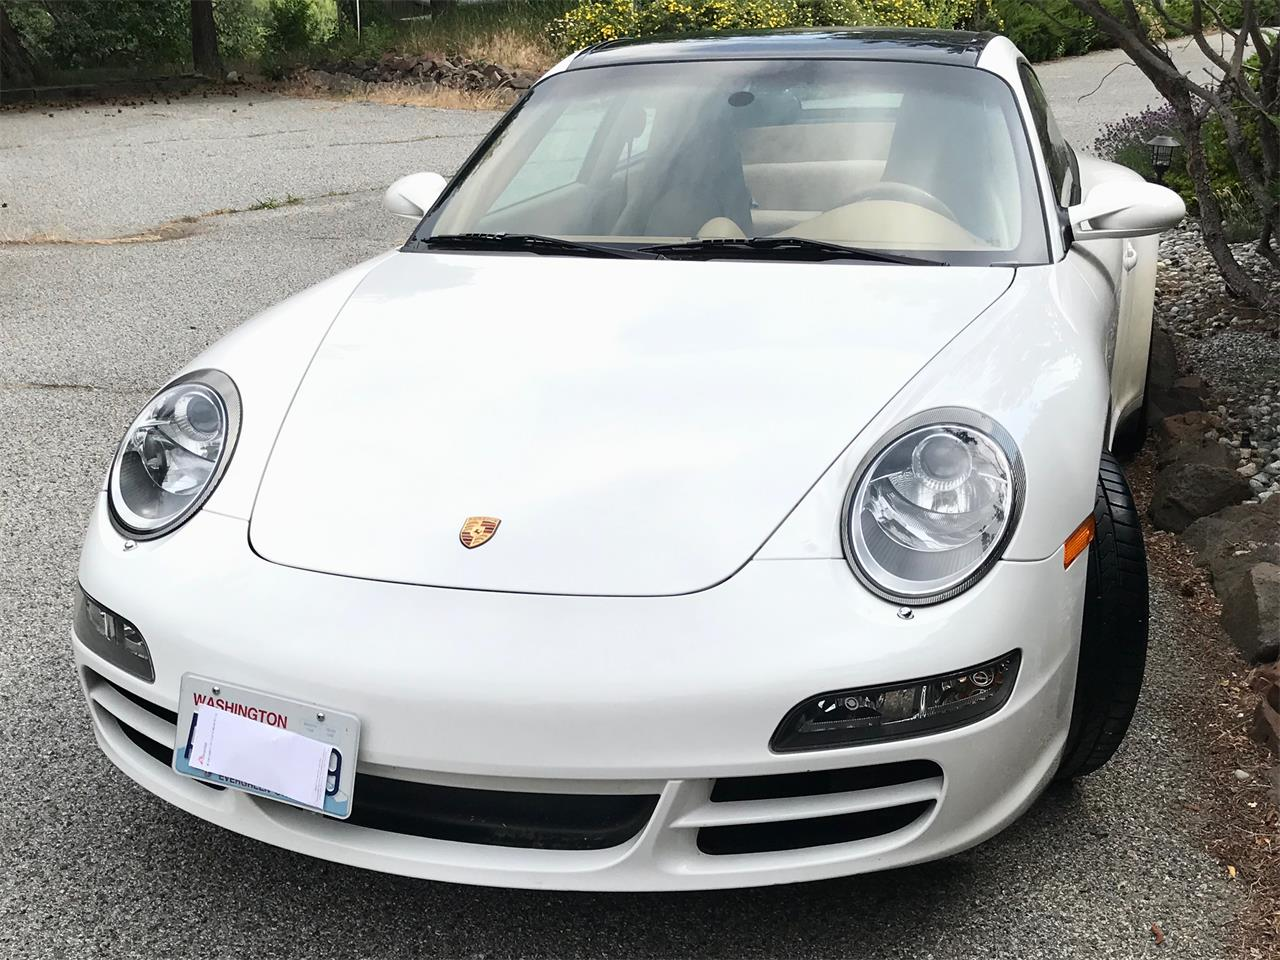 Large Picture of 2007 Porsche 911 located in Washington - $44,475.00 - QNME